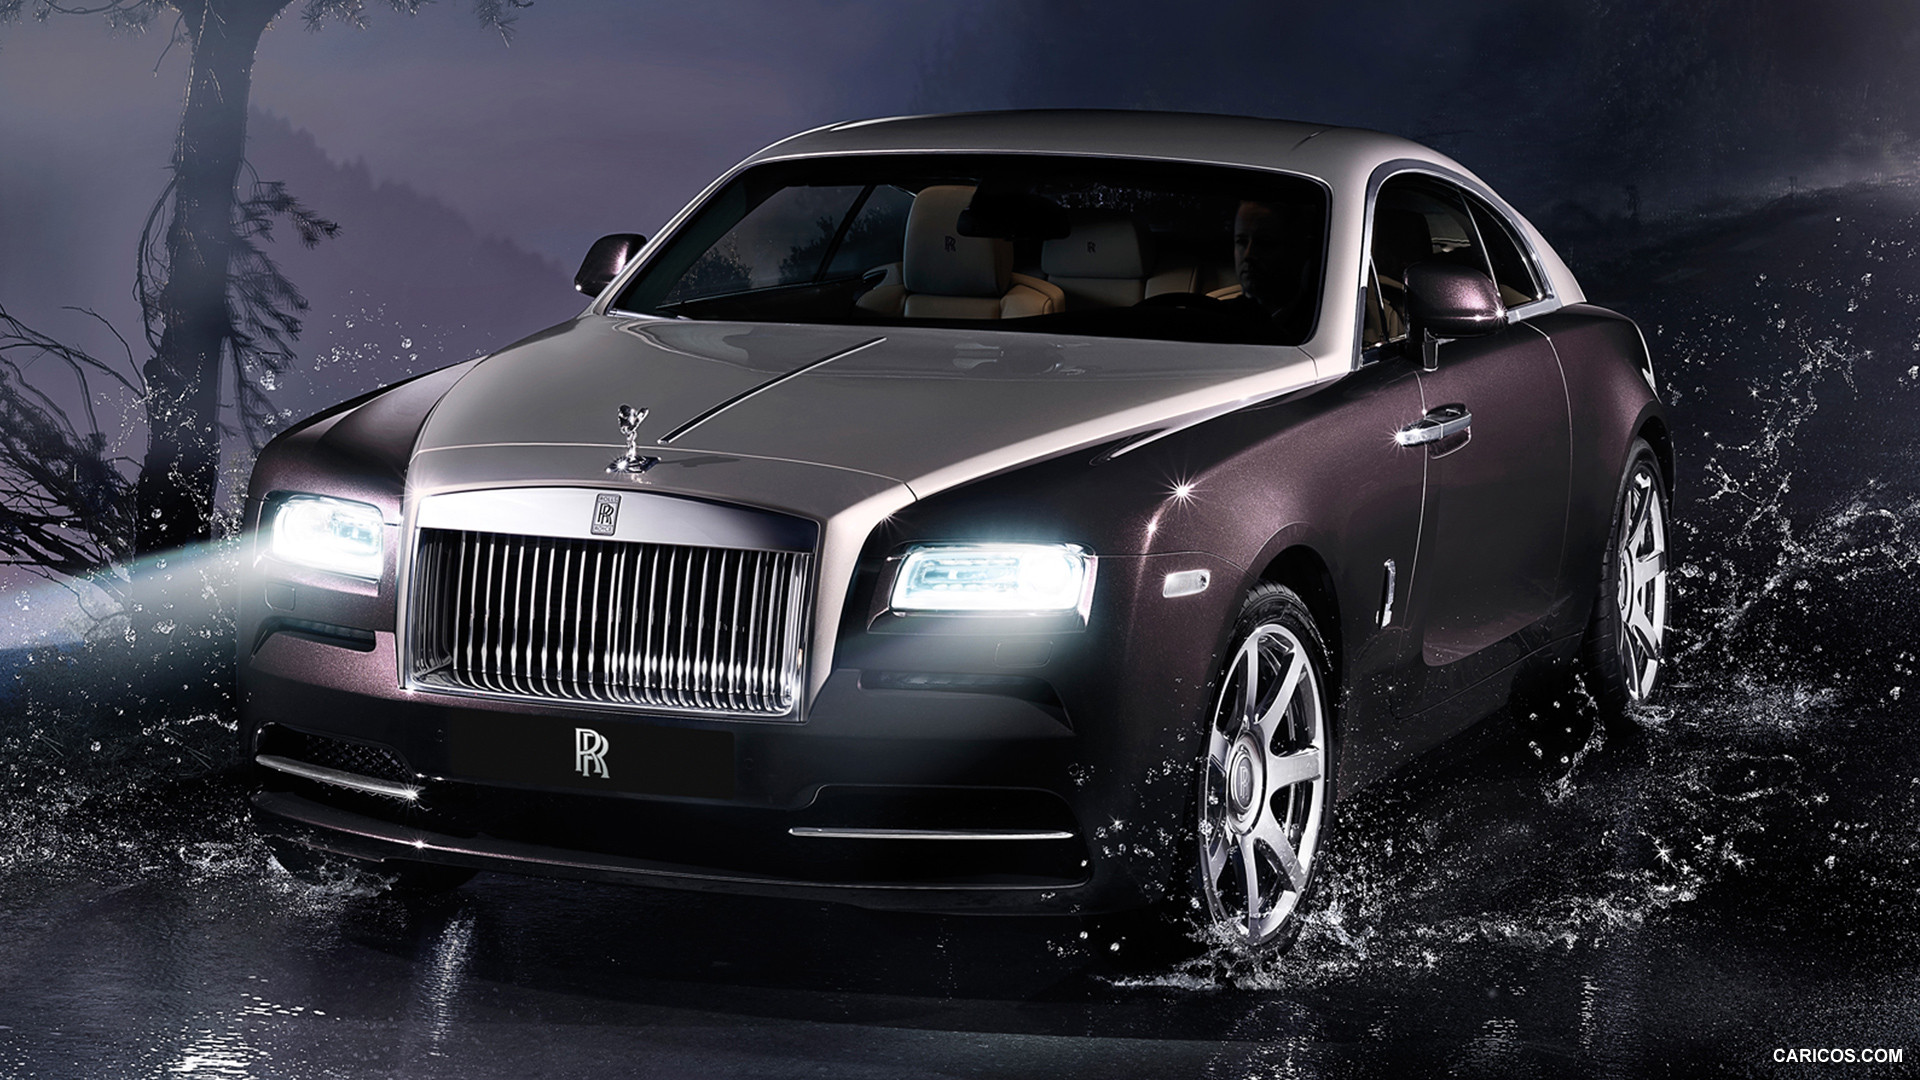 2014 Rolls Royce Wraith Coupe HD Wallpaper